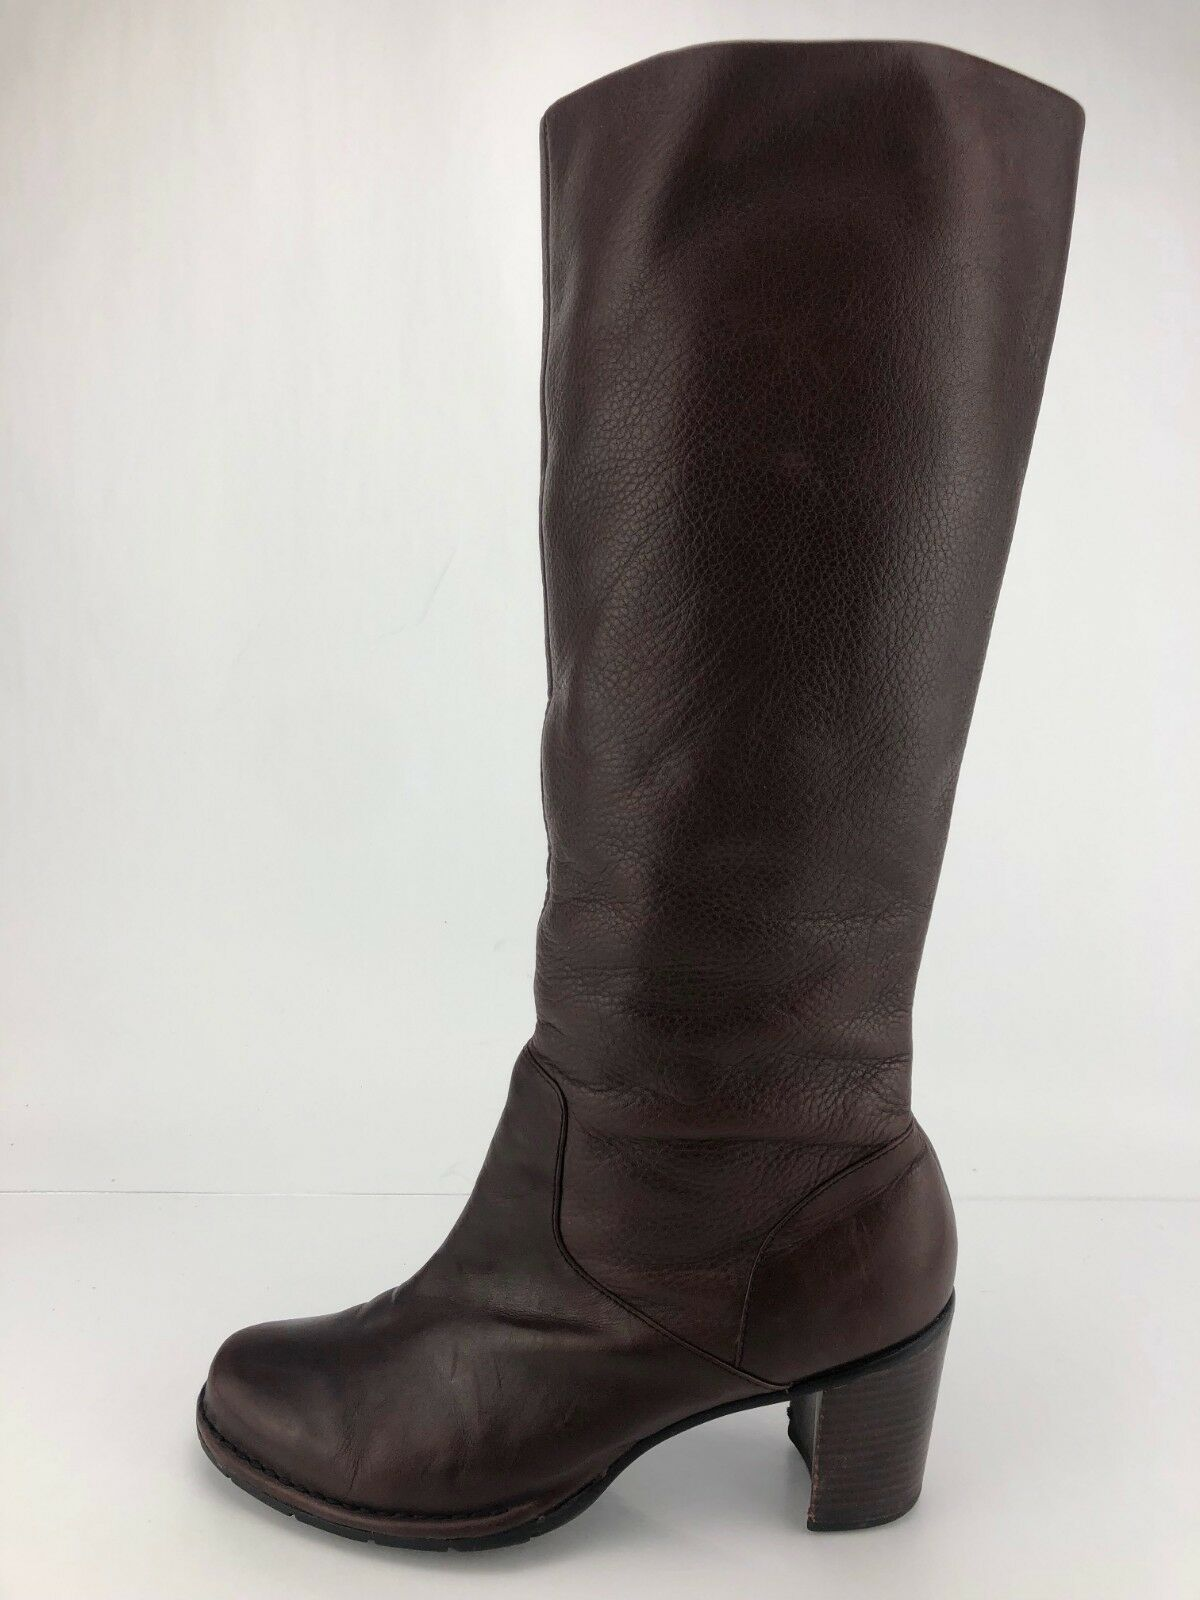 Indigo by Clarks Knee High Boots Boots Boots Pull Up Brown Leather Heel Booties Womens 8 M 7ab4e0